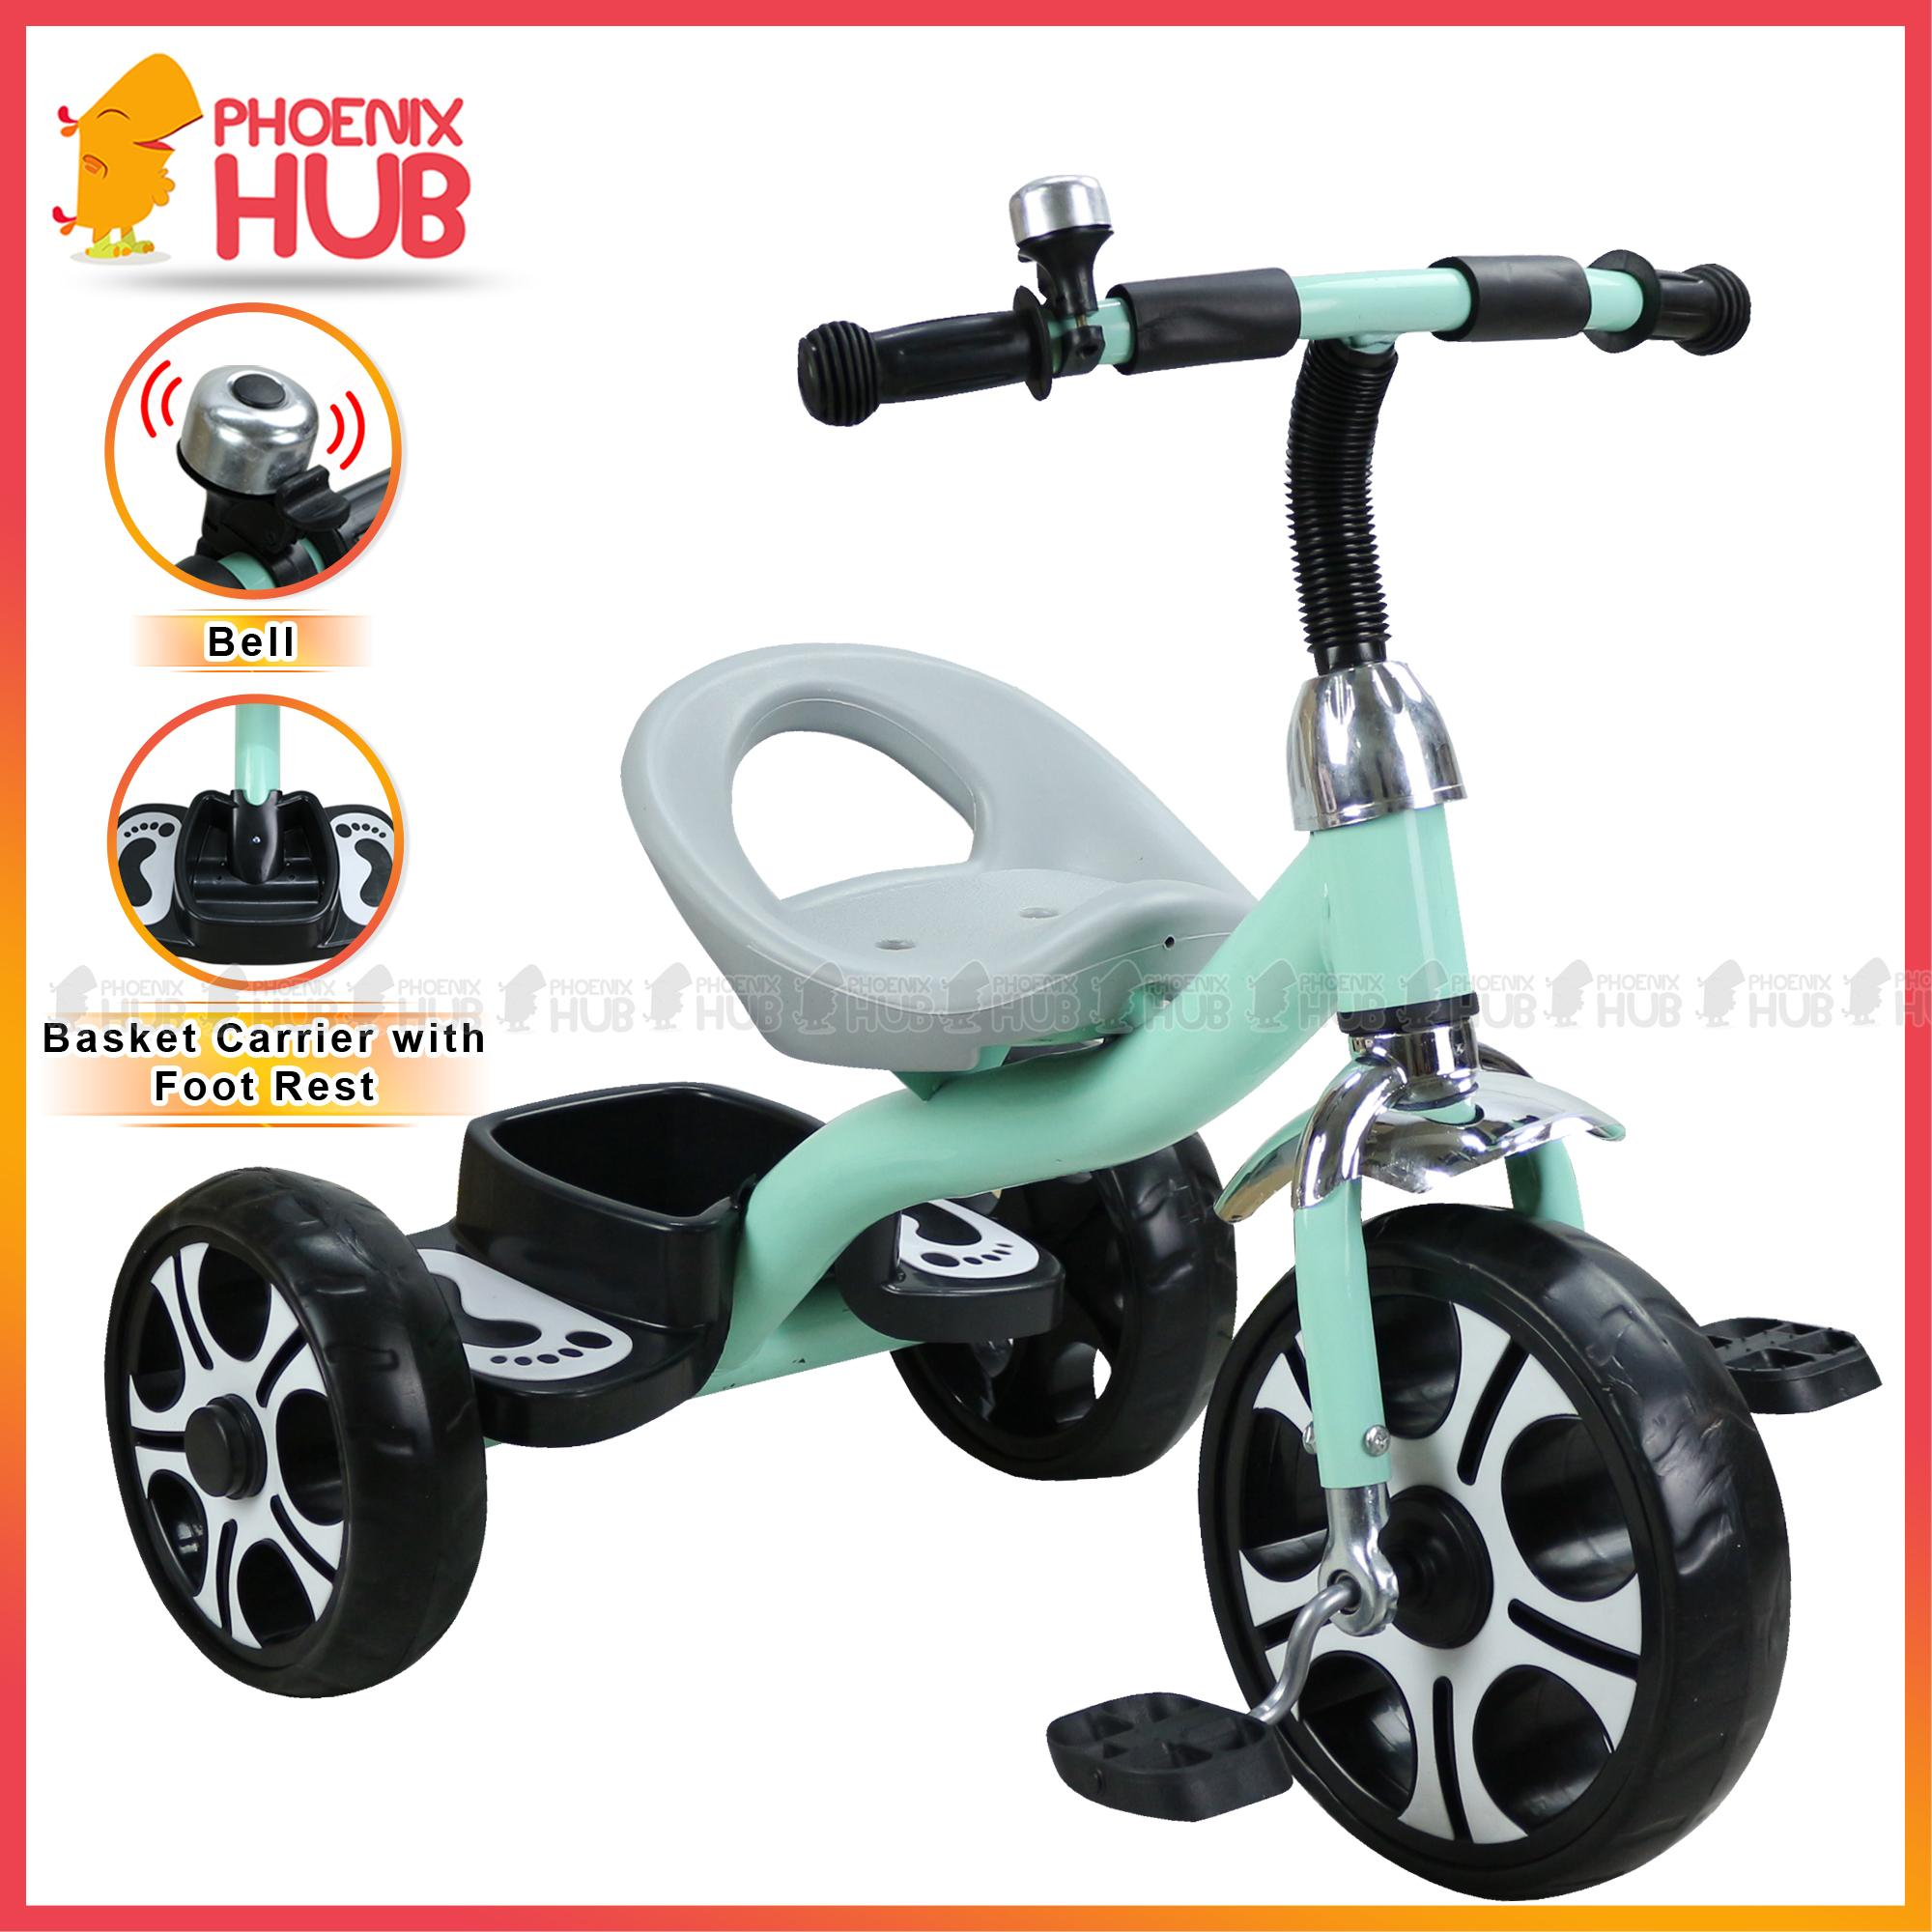 Phoenix Hub K01 Ride On Bike Hand Push Bike Tricycle Bike with Rear Basket  Carrier and Footrest